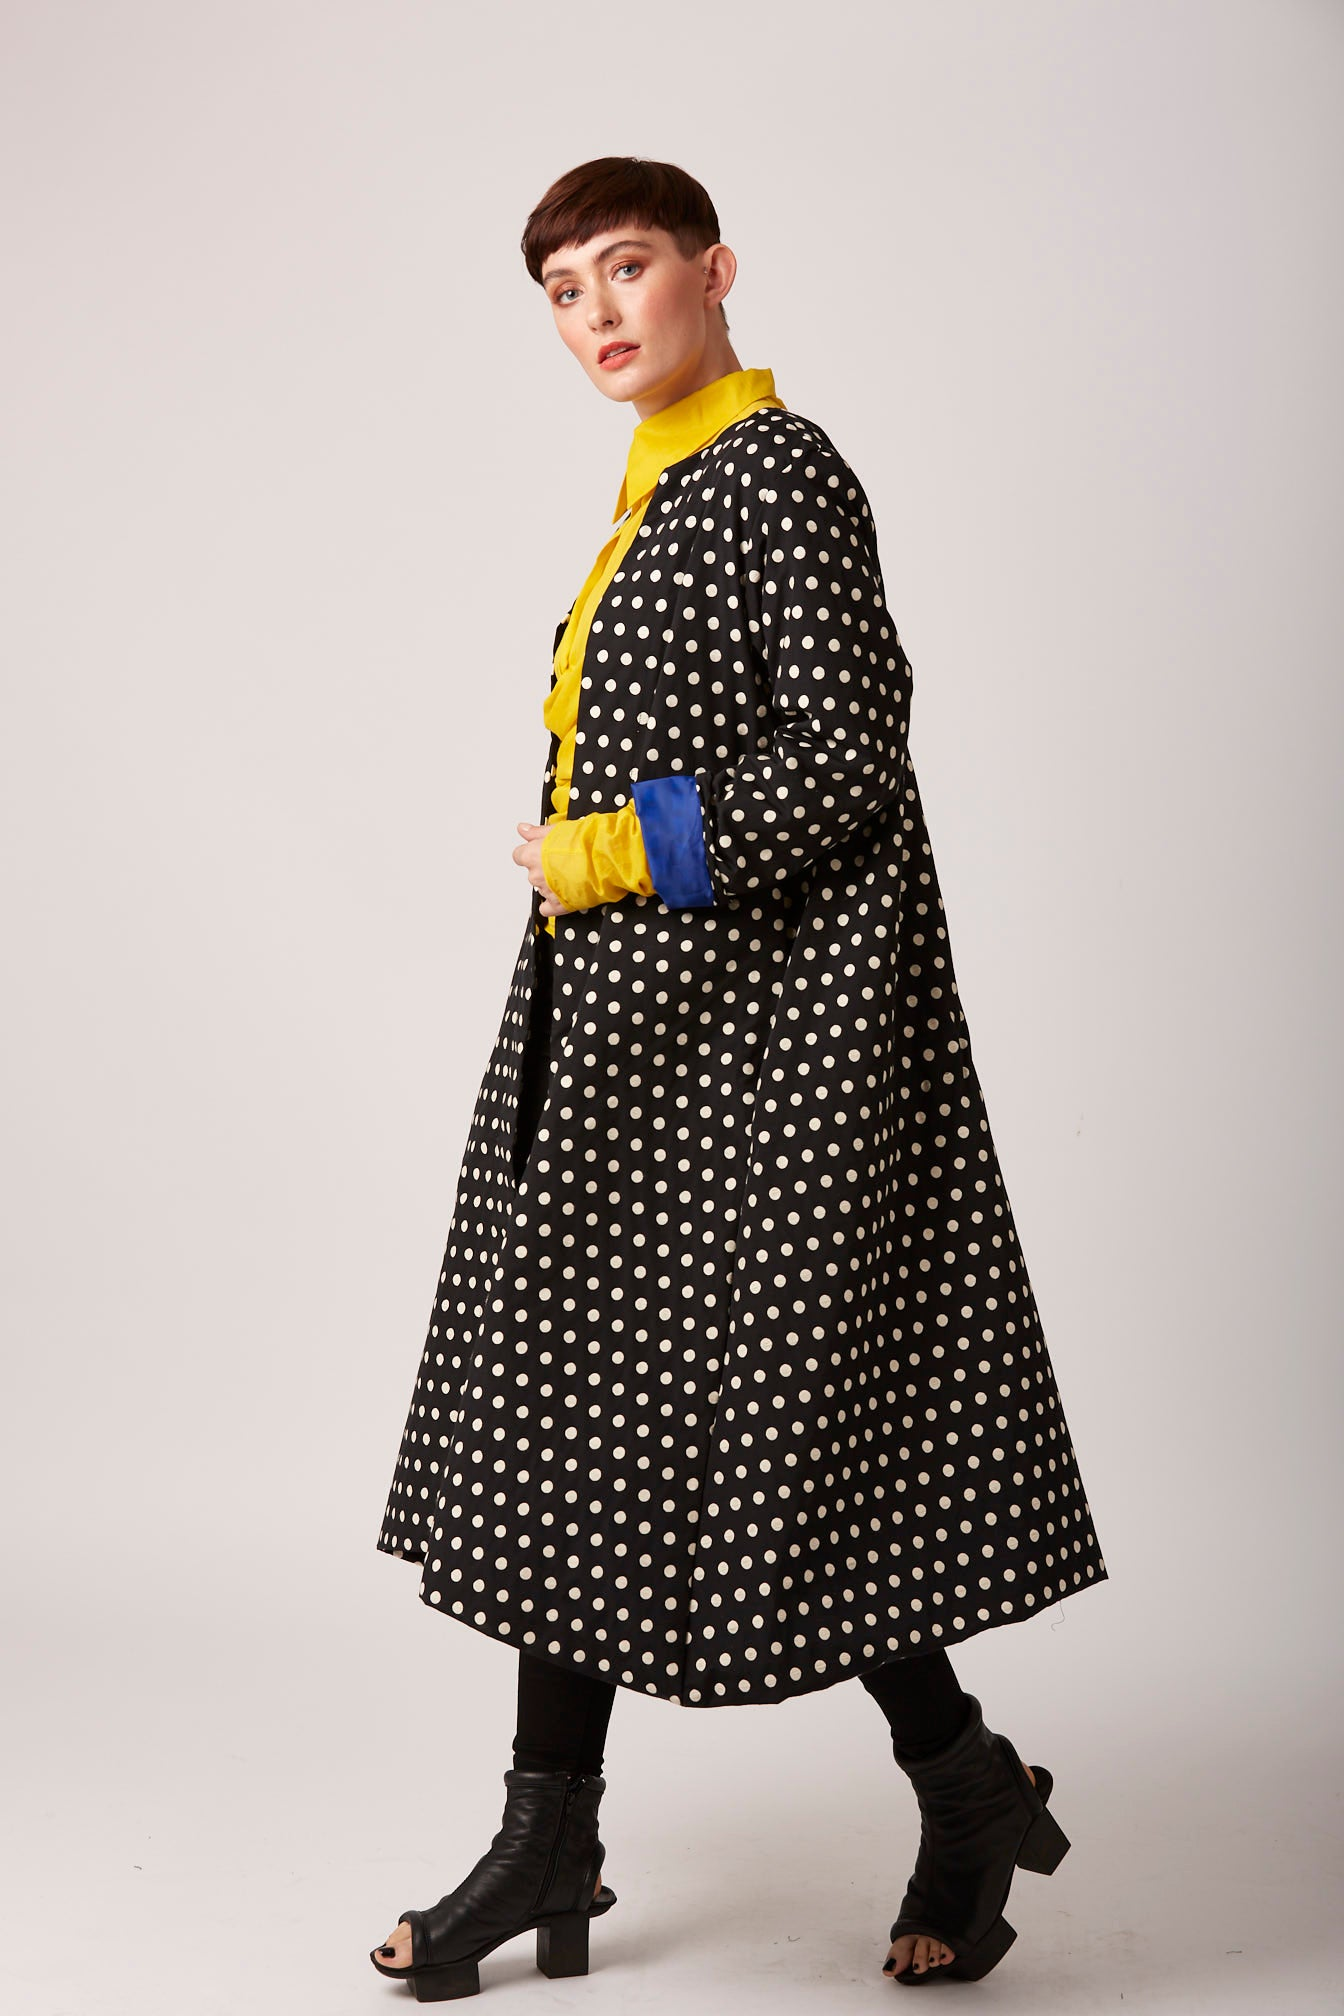 Spotty polka dot monochrome coat